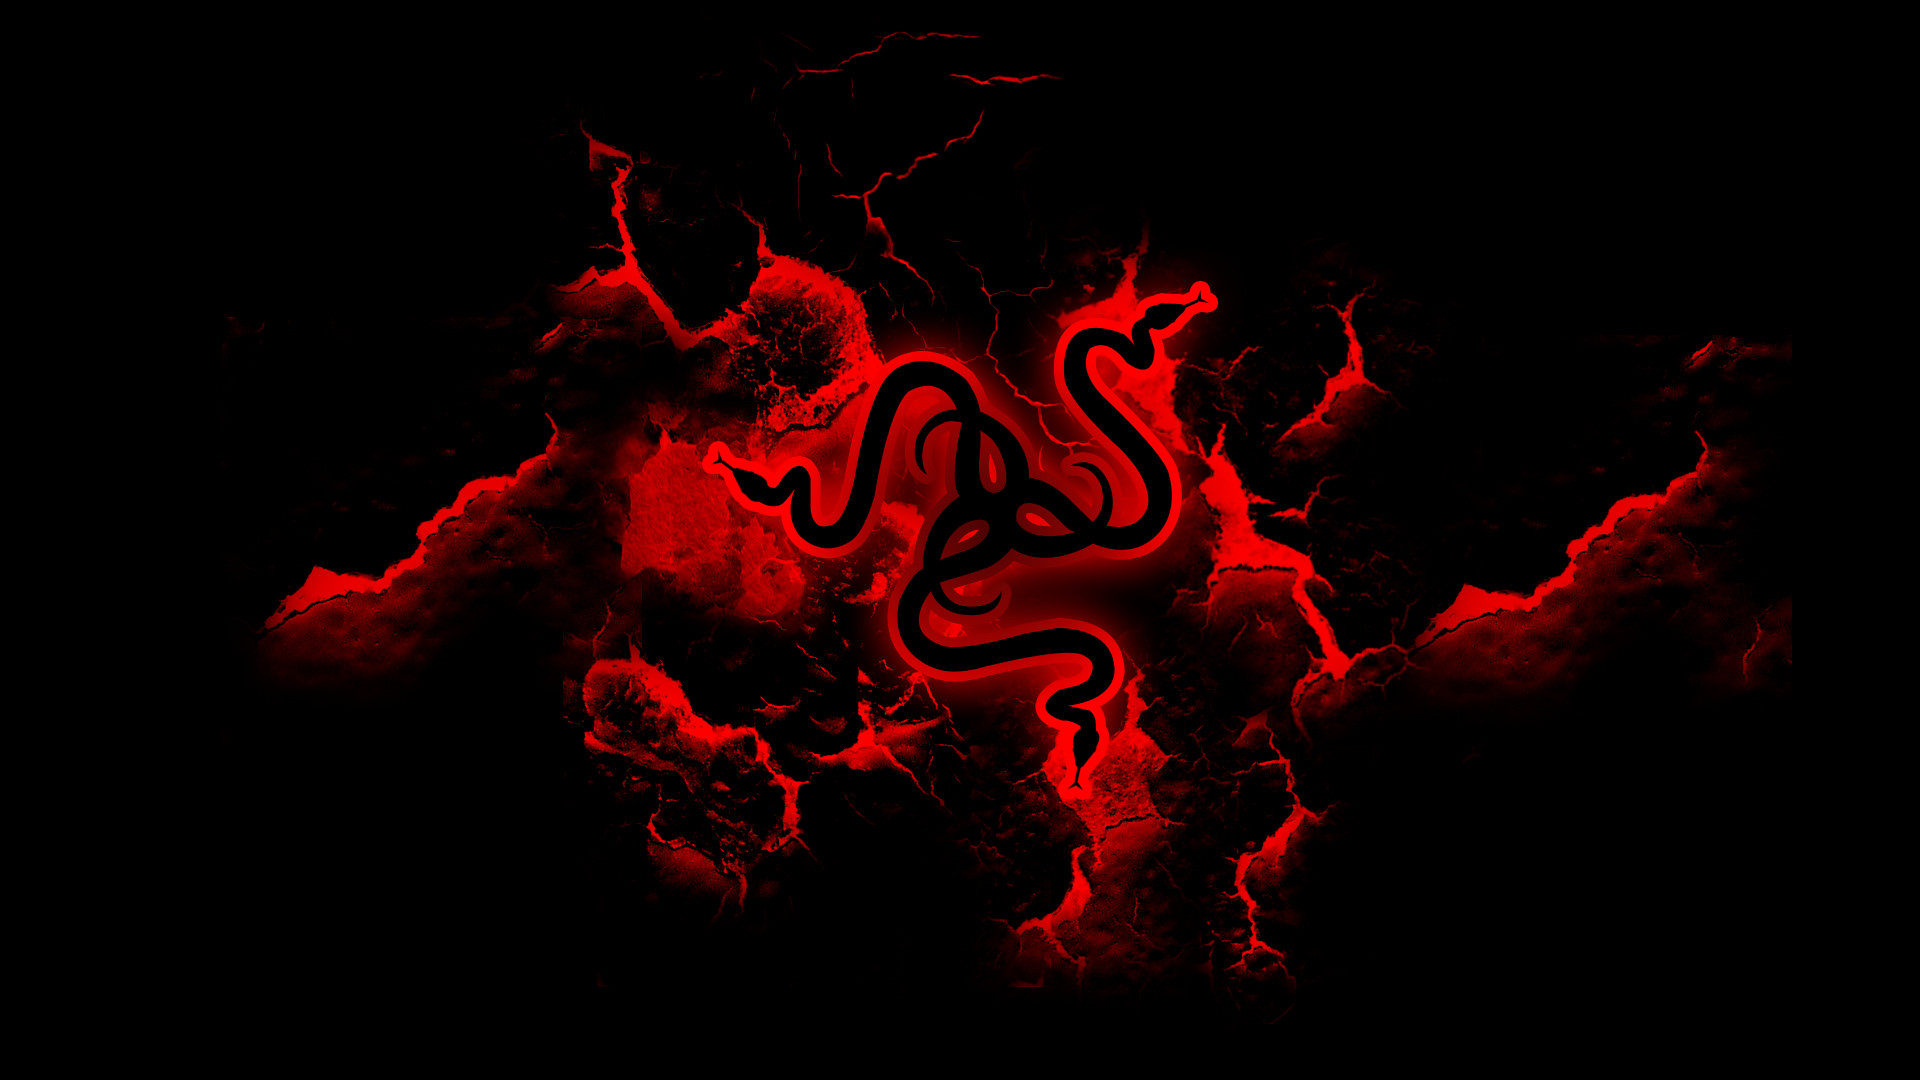 1920x1080 1080p Wallpaper Razer Red Logo | Bathroom Decor